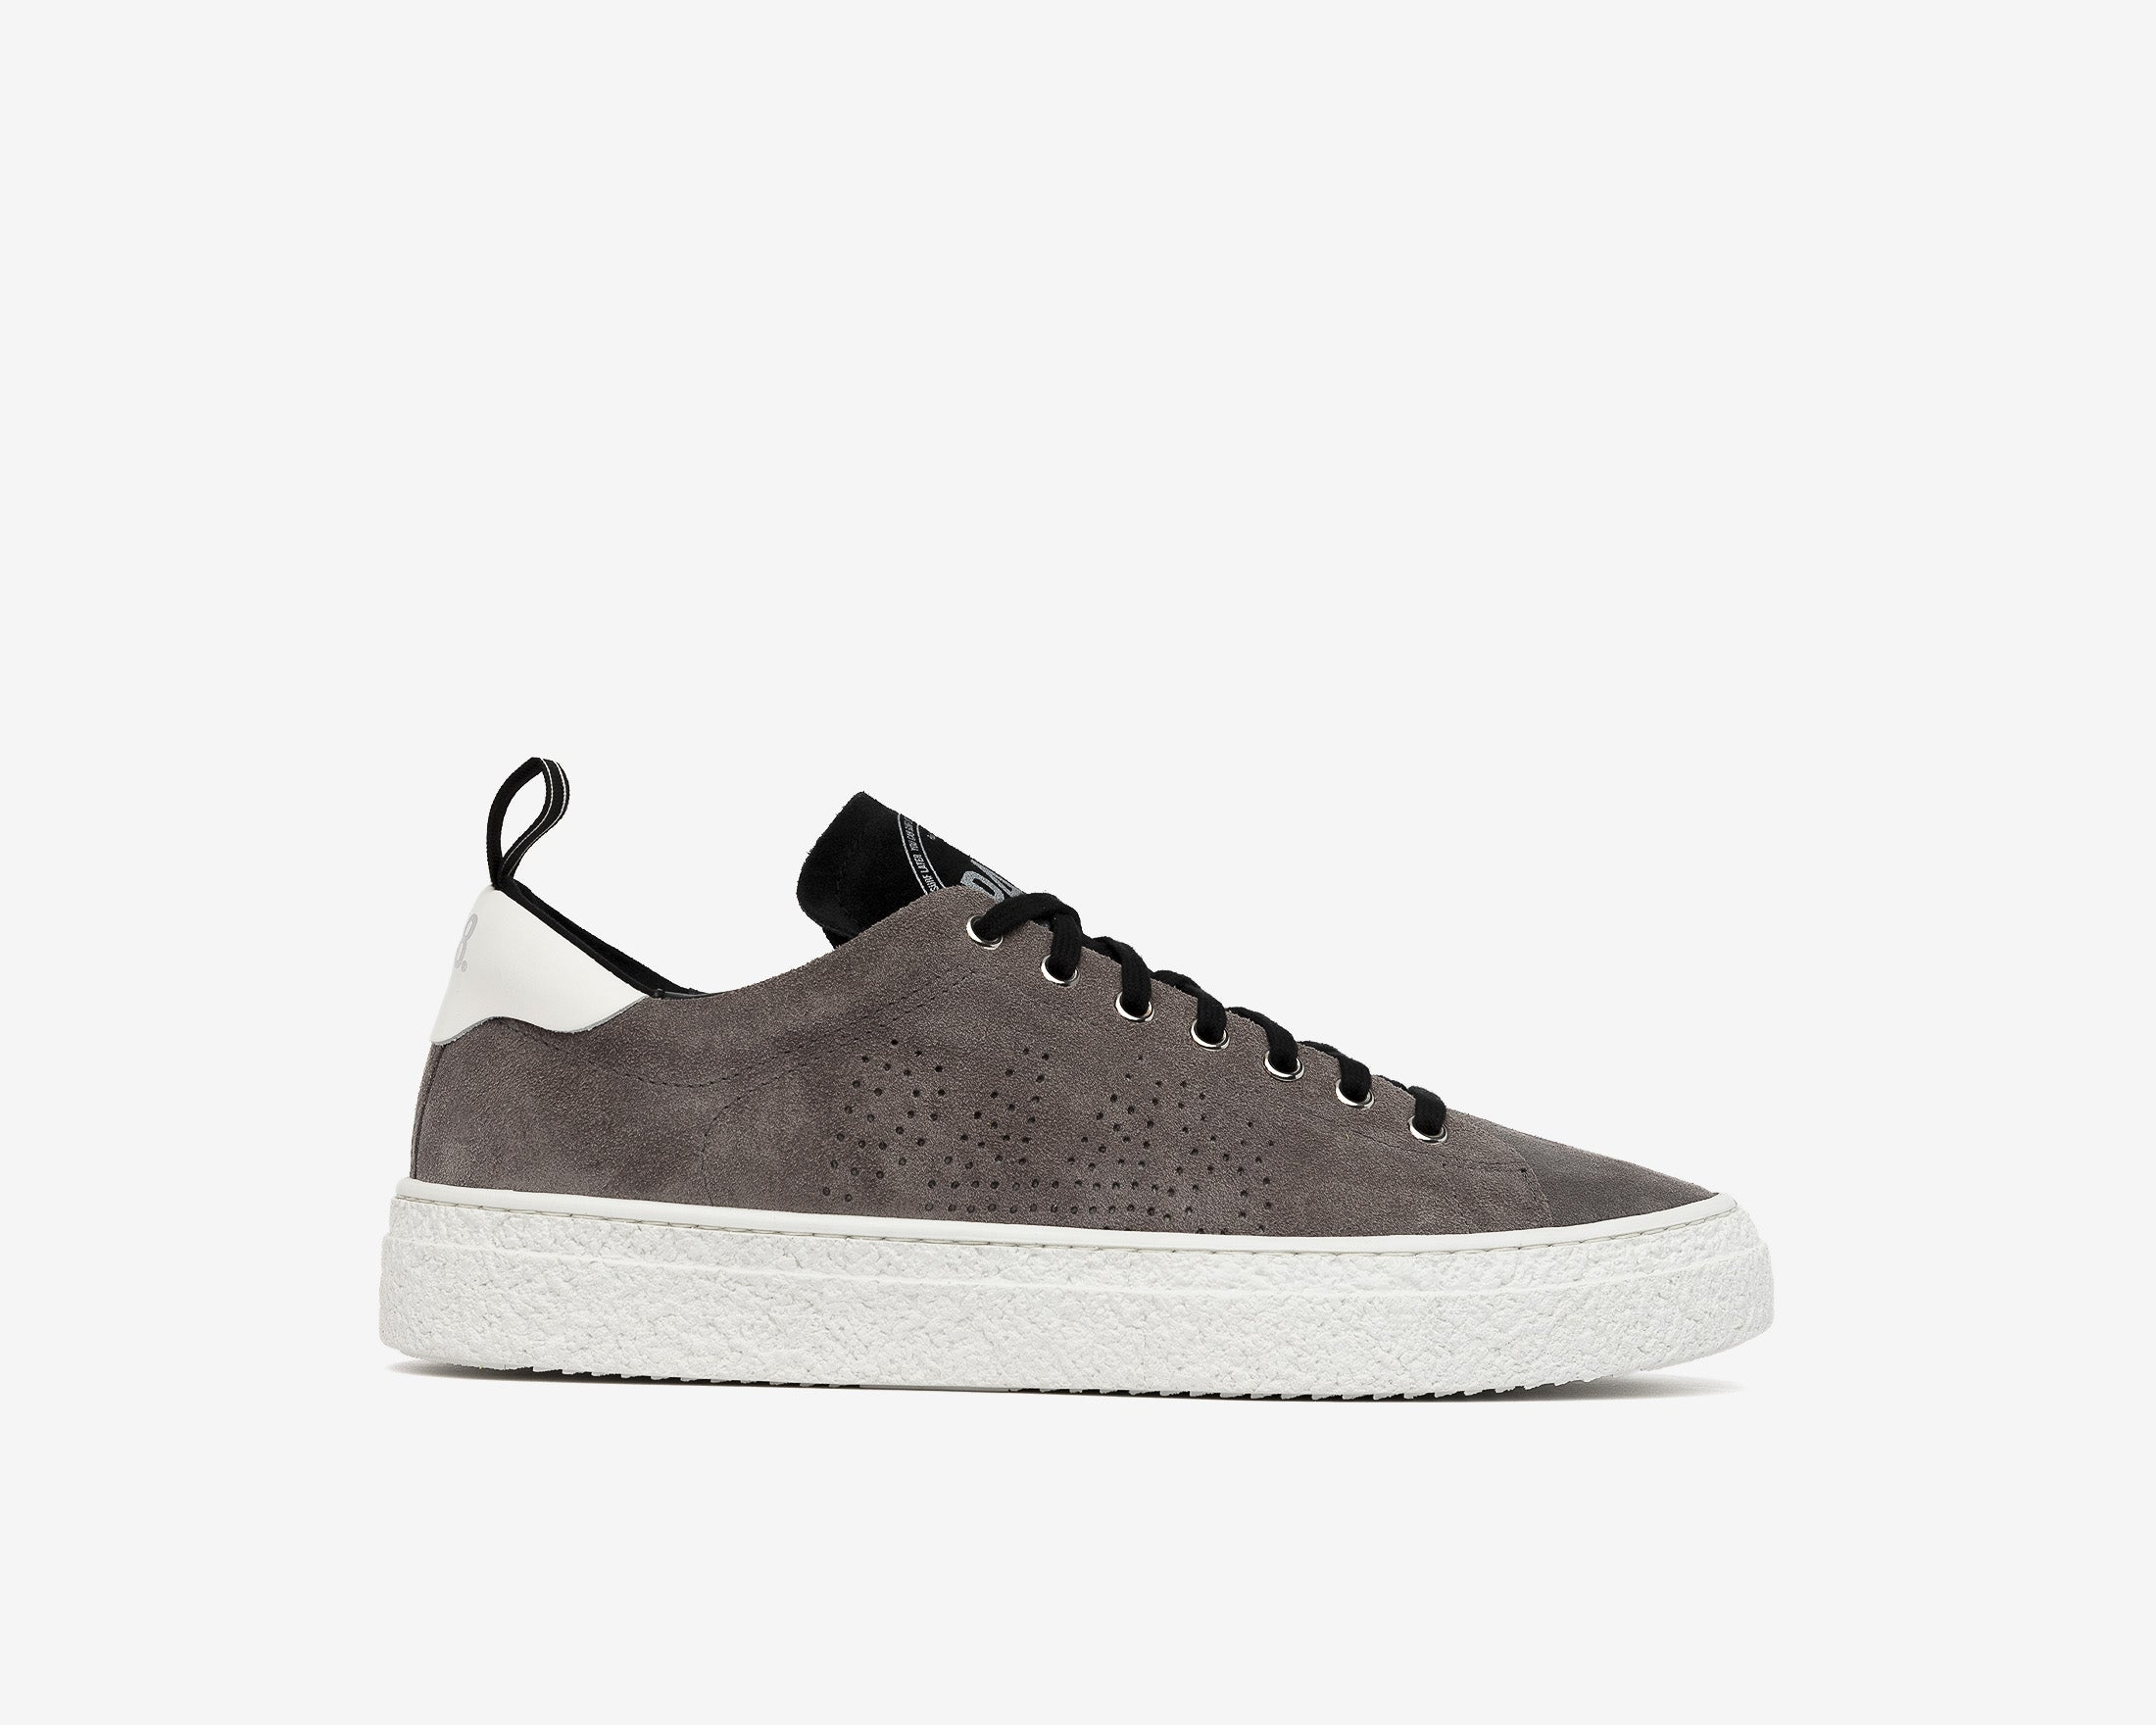 Shane Slip-on Sneaker in Anthracite Suede - Profile